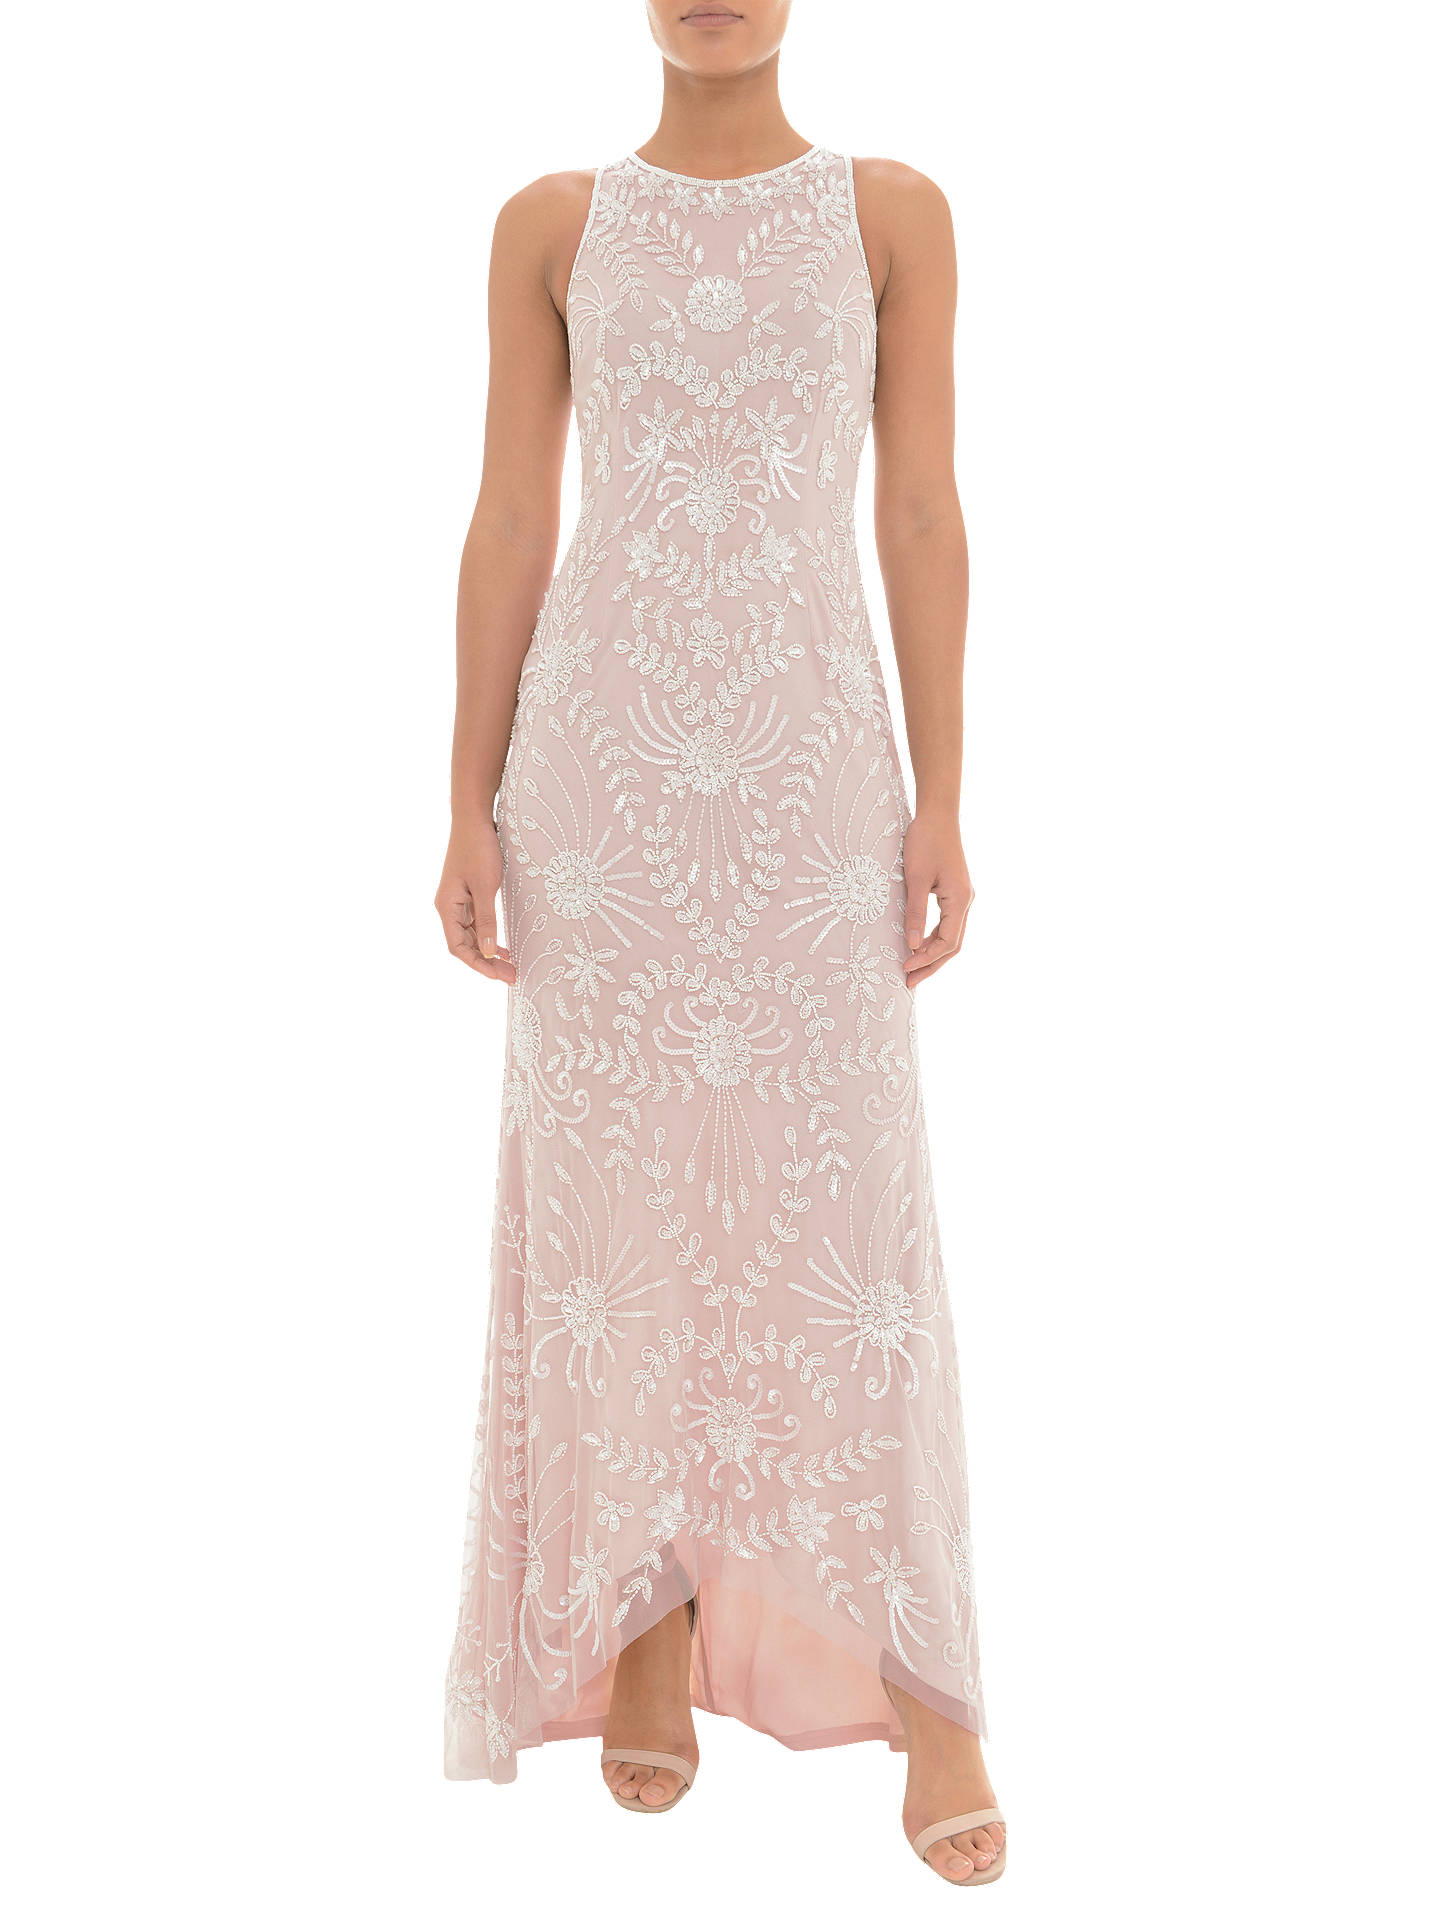 Buy Adrianna Papell Beaded Halter Dress, Shell Pink/Ivory, 6 Online at johnlewis.com